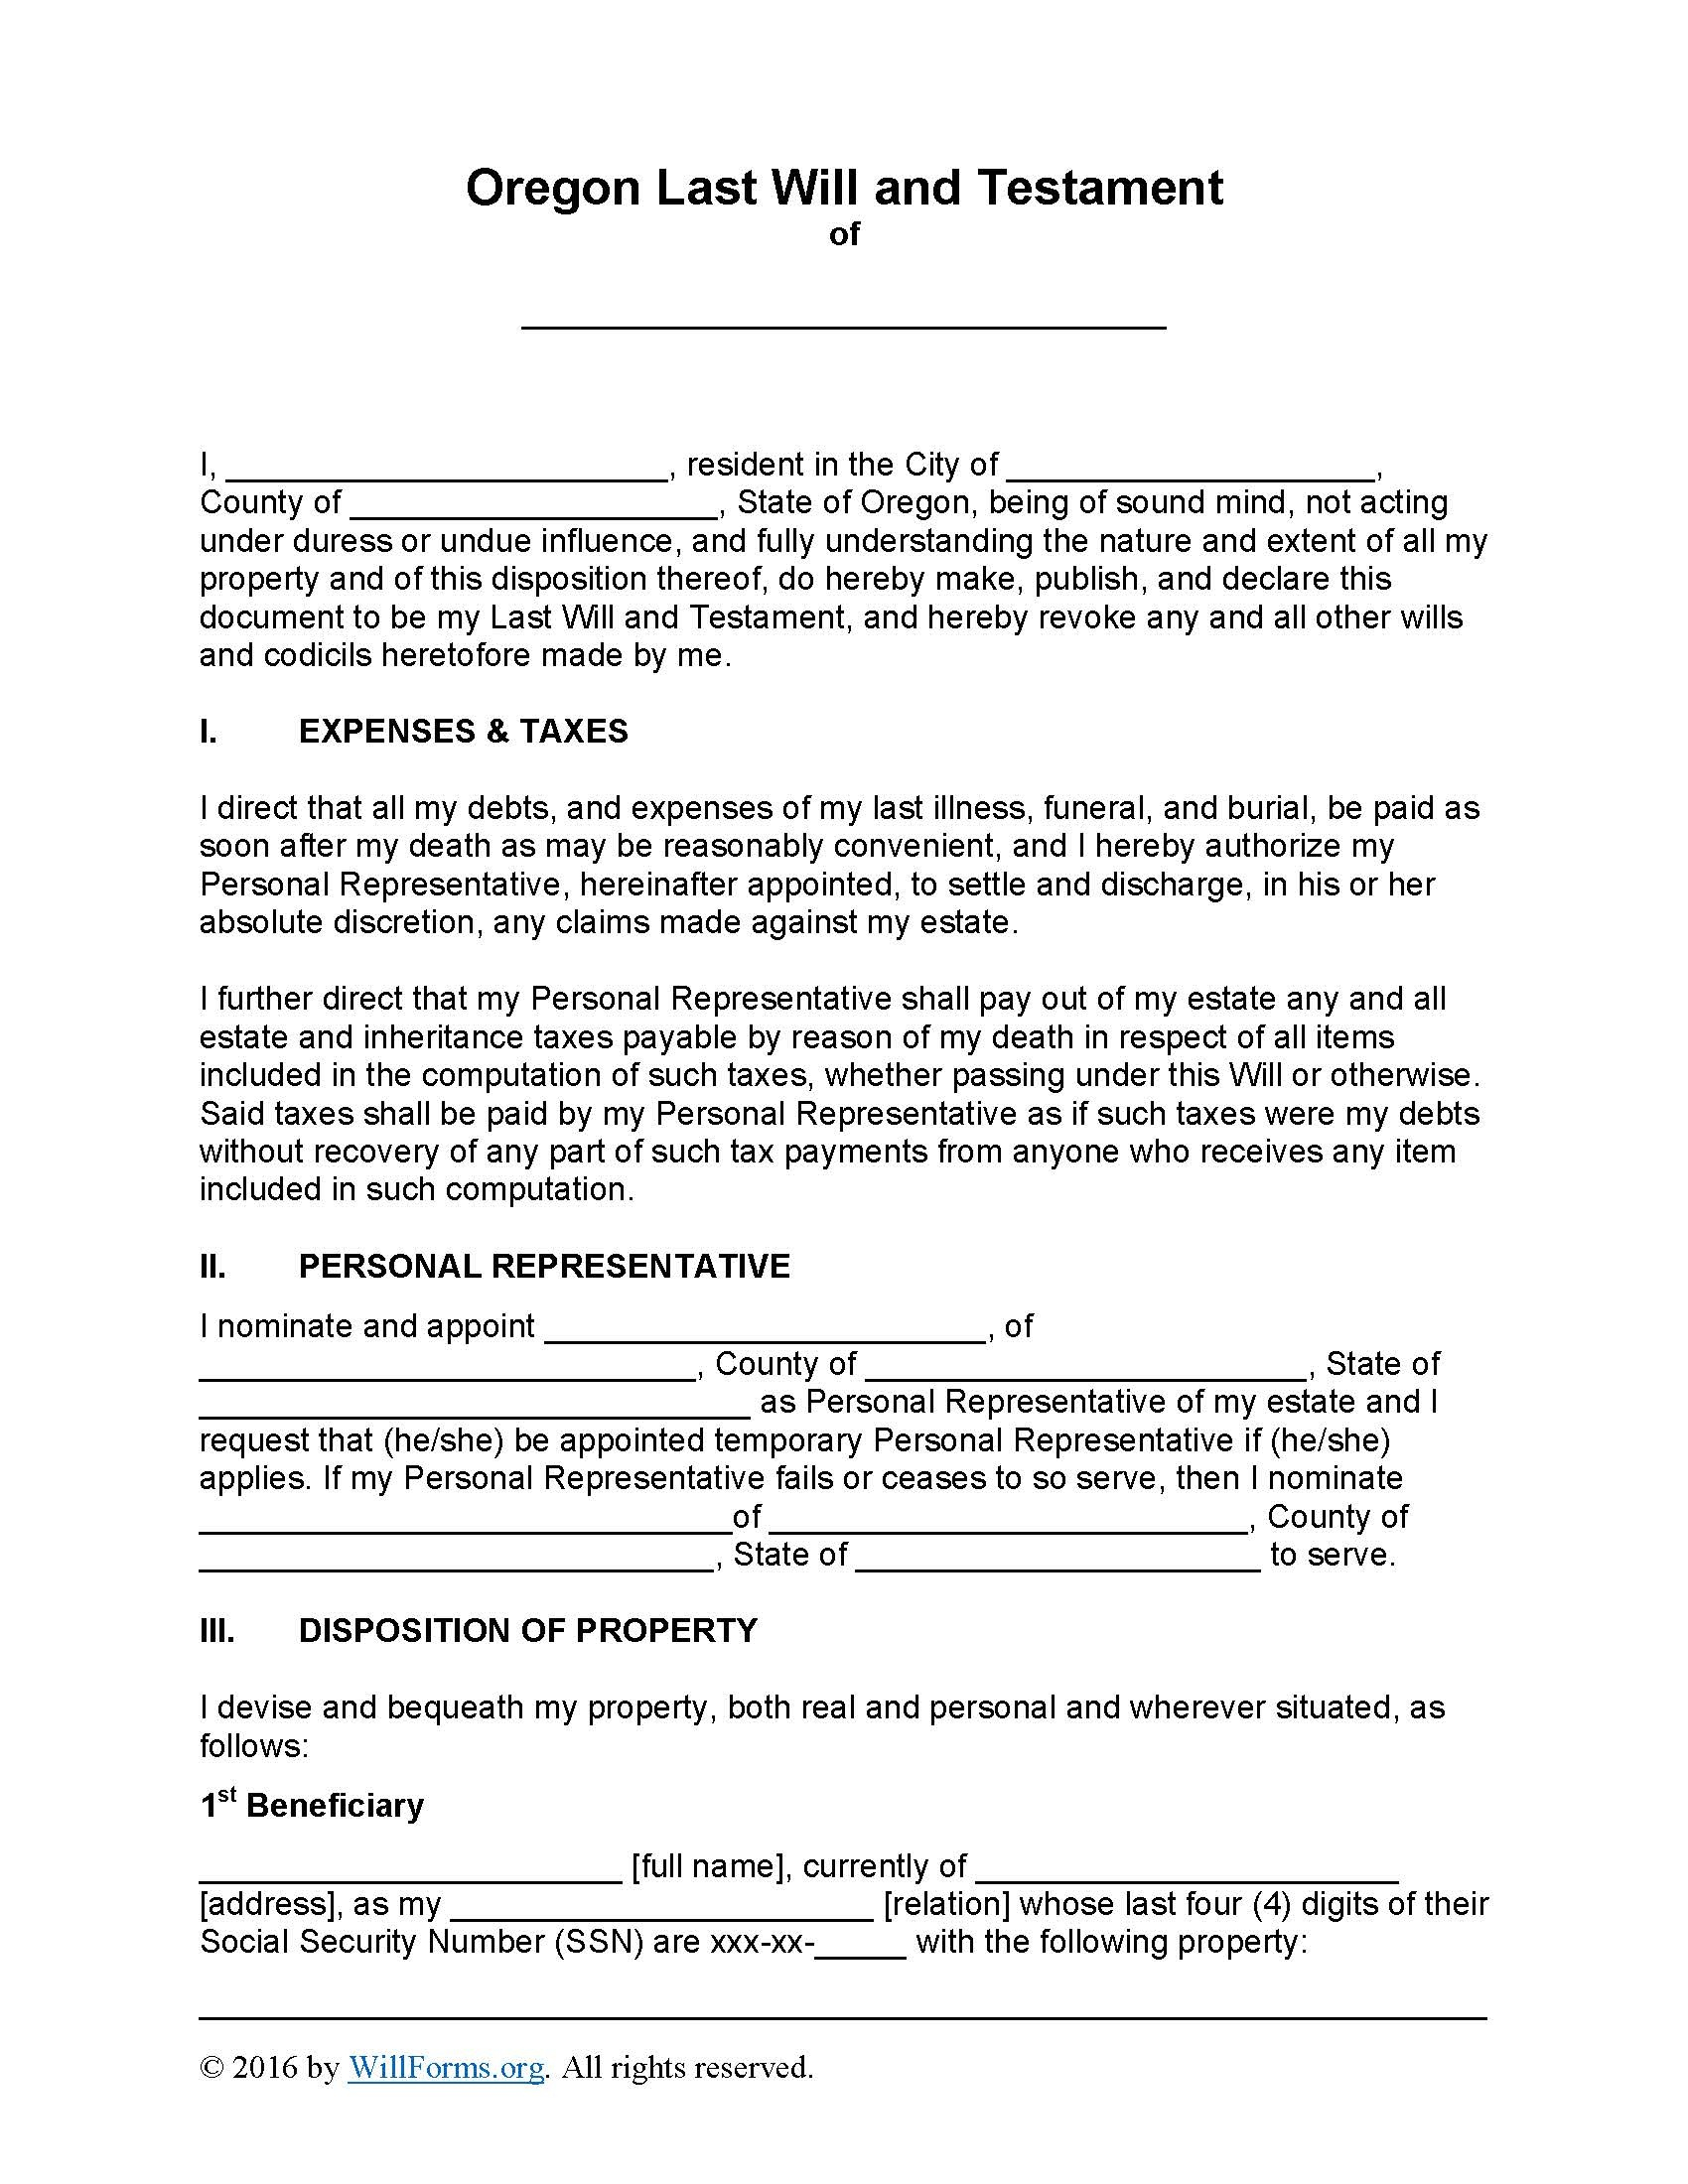 Oregon Last Will And Testament Form - Will Forms : Will Forms - Free Printable Florida Last Will And Testament Form